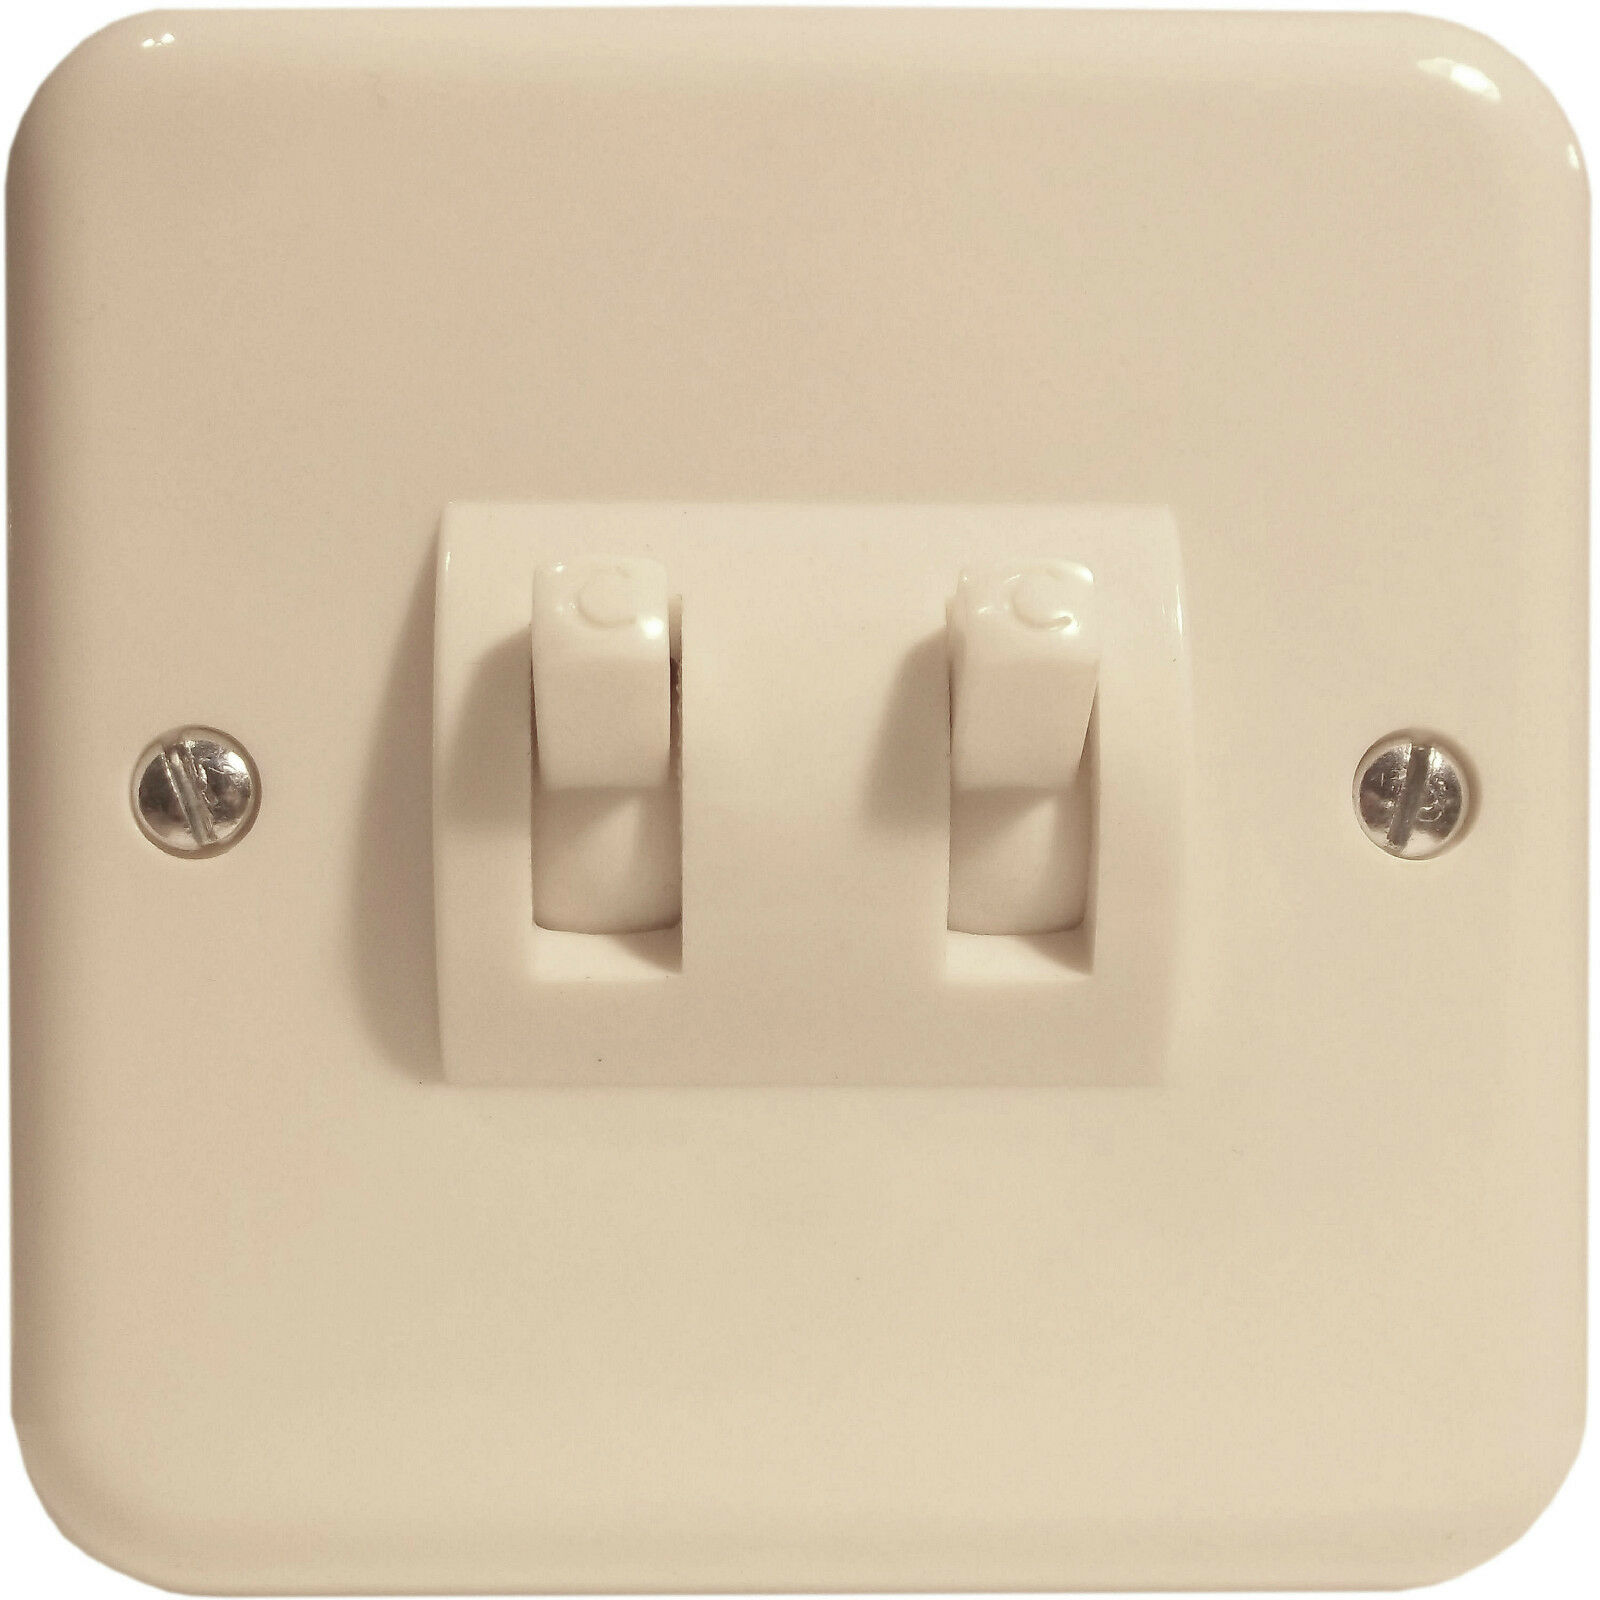 Crabtree Vintage Flush Fitting Ivory Bakelite Switch 2way 2gang 2 Way 1 Of 3only 0 Available